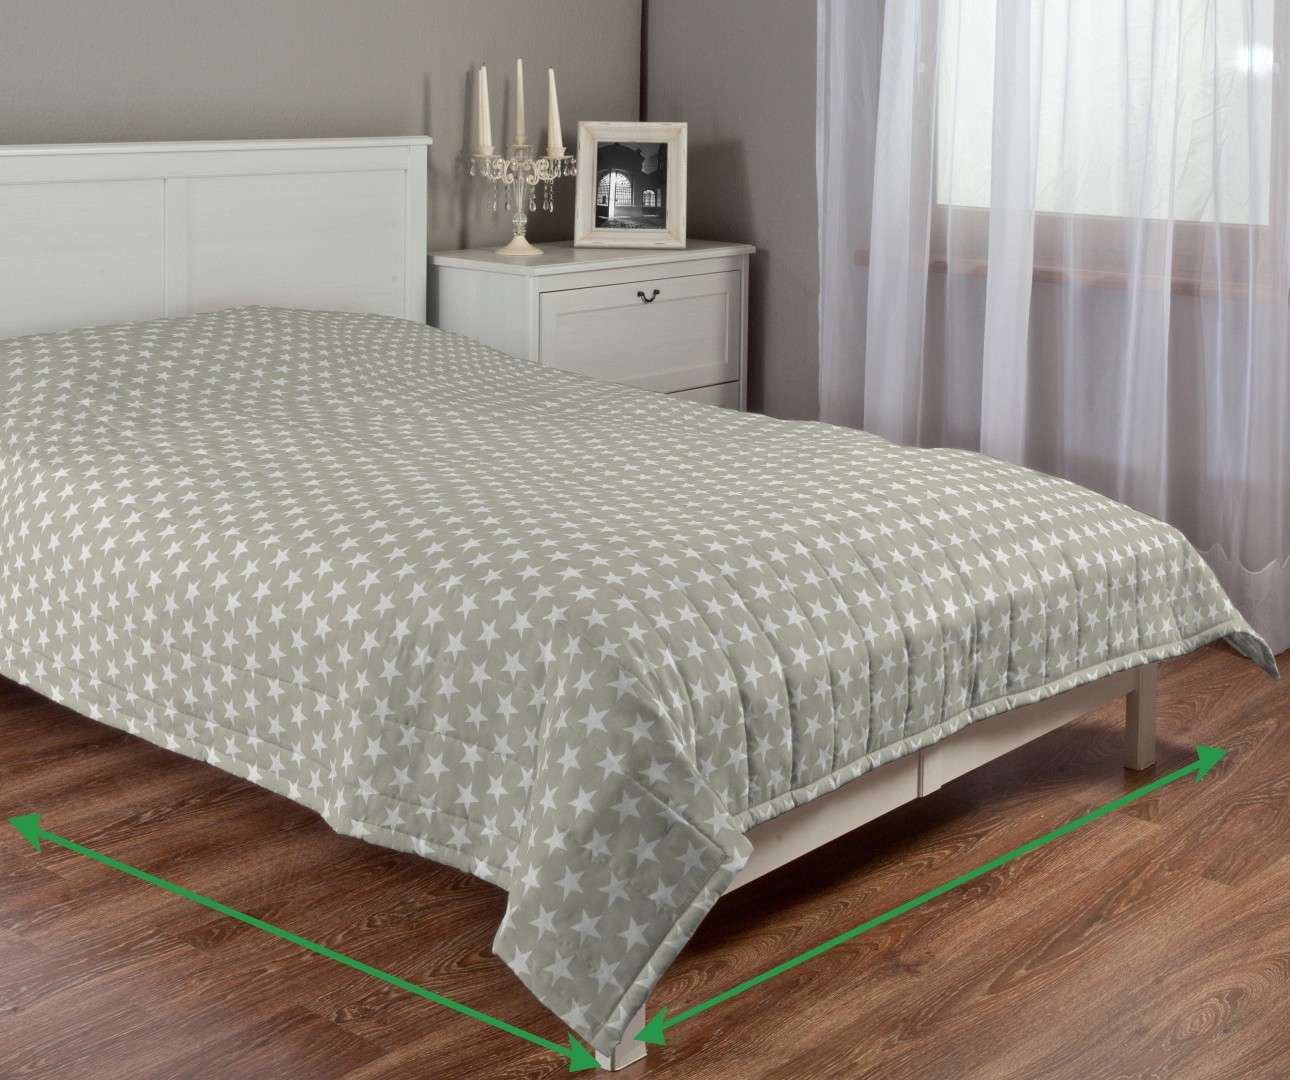 Quilted throw (vertical quilt pattern) in collection Marina, fabric: 140-62